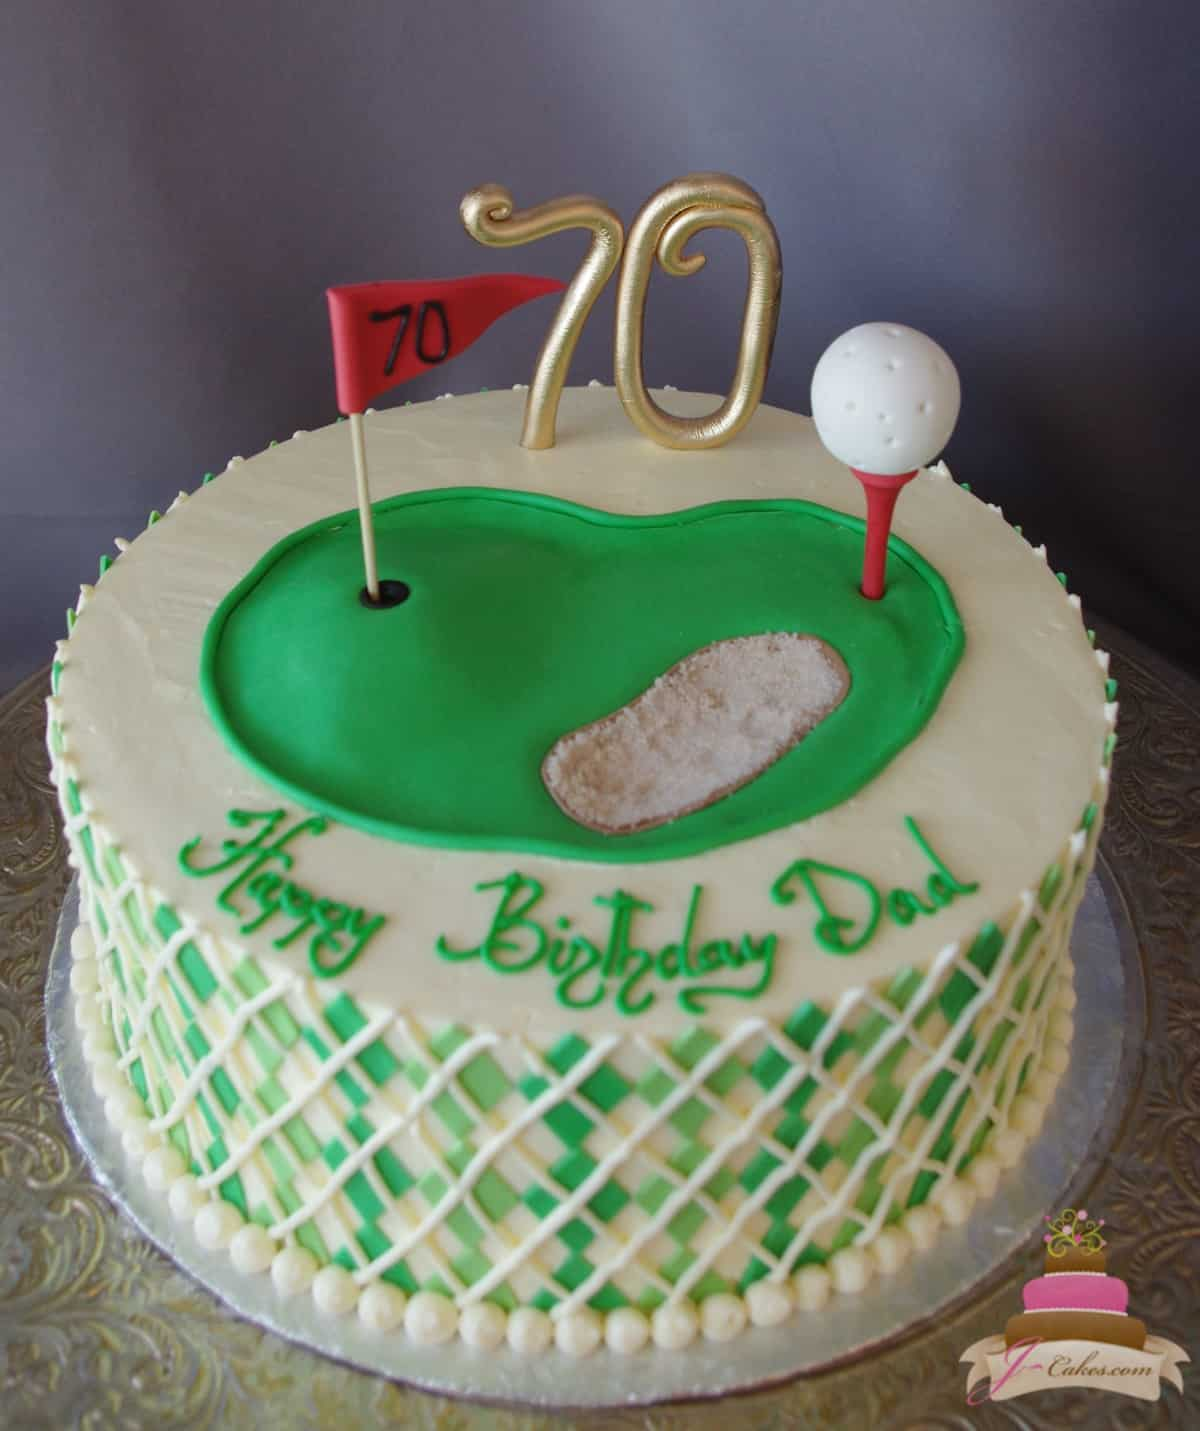 169 Golf Theme Birthday Cake